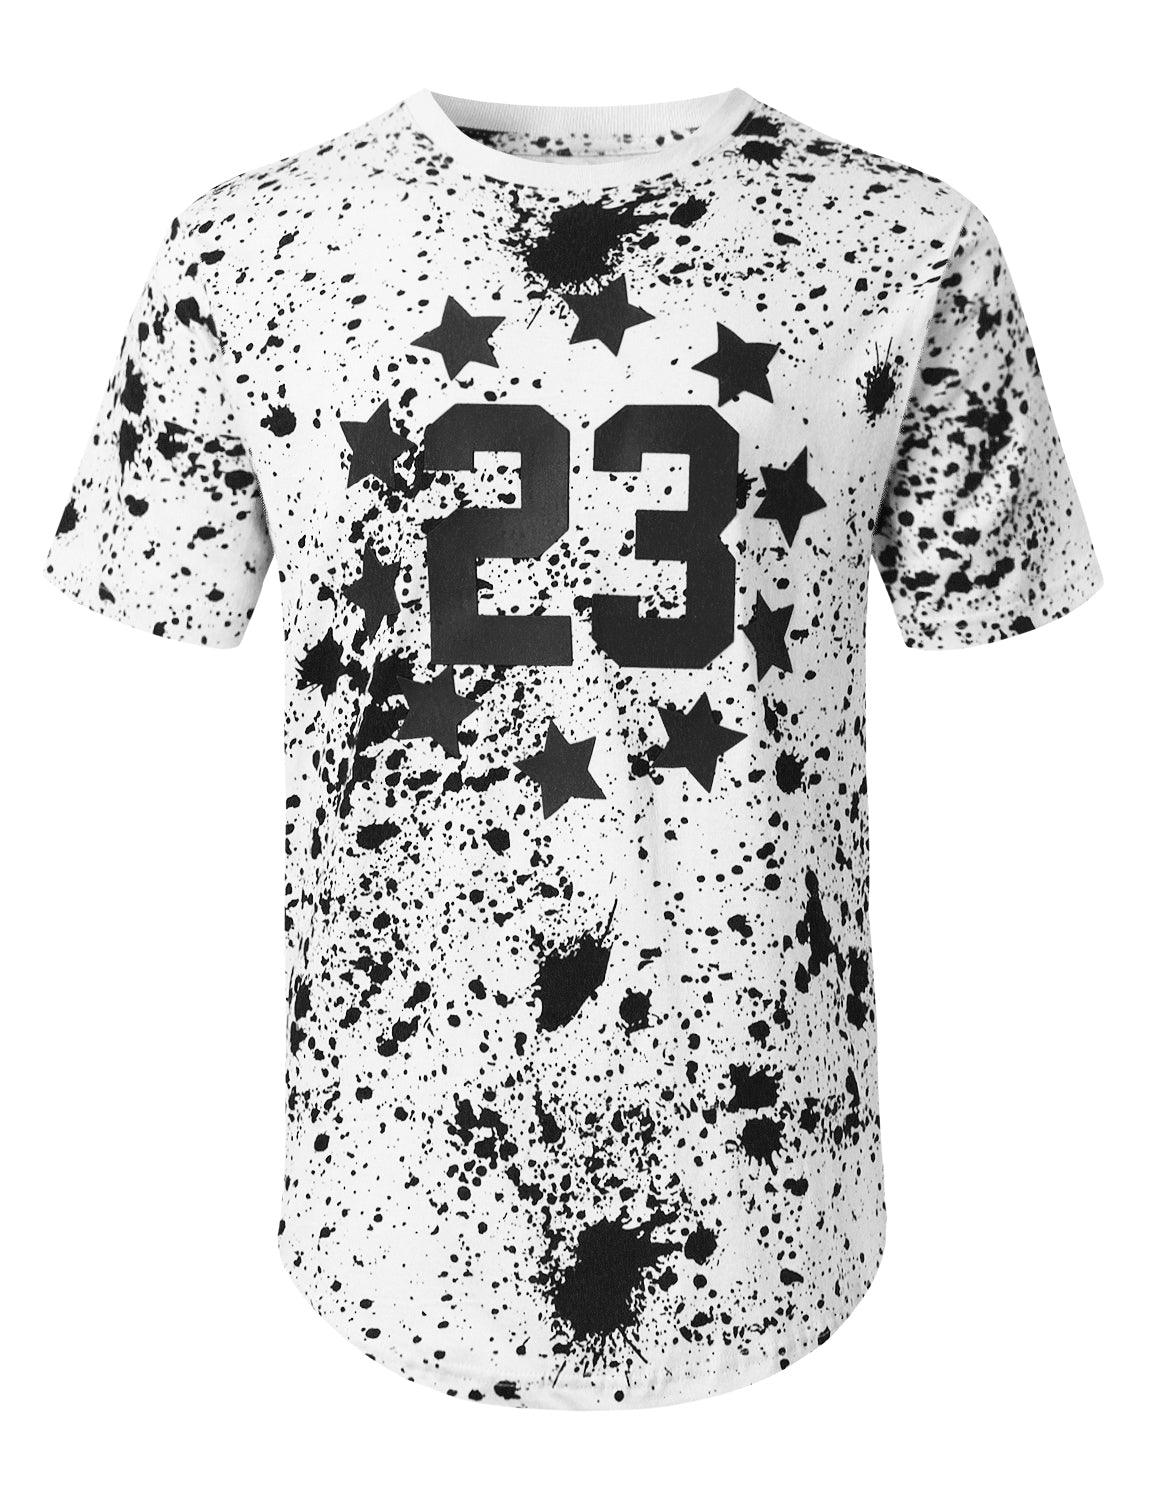 WHITE Star 23 Splatter Printed T-shirt - URBANCREWS